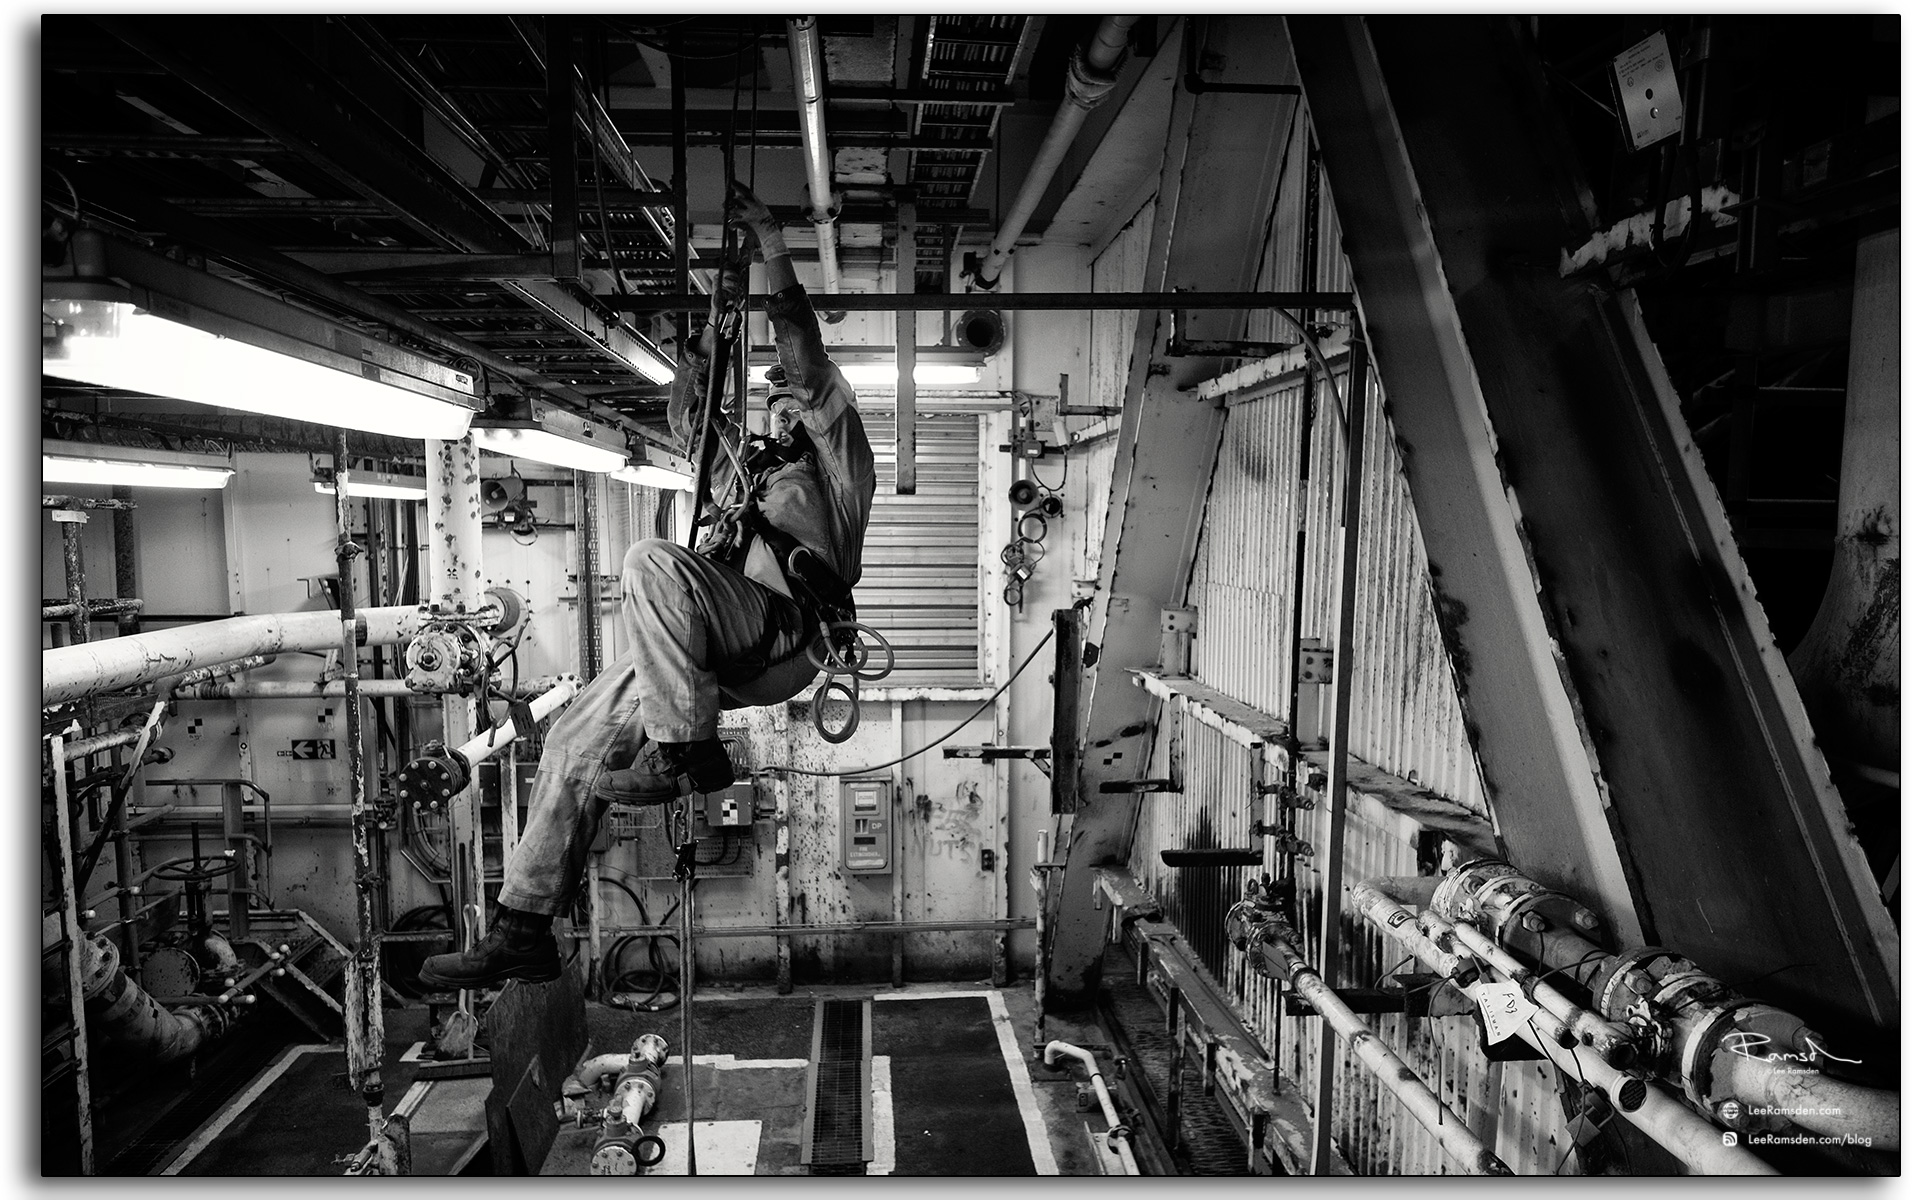 20 IRATA industrial rope access techniques being used to work at height safely